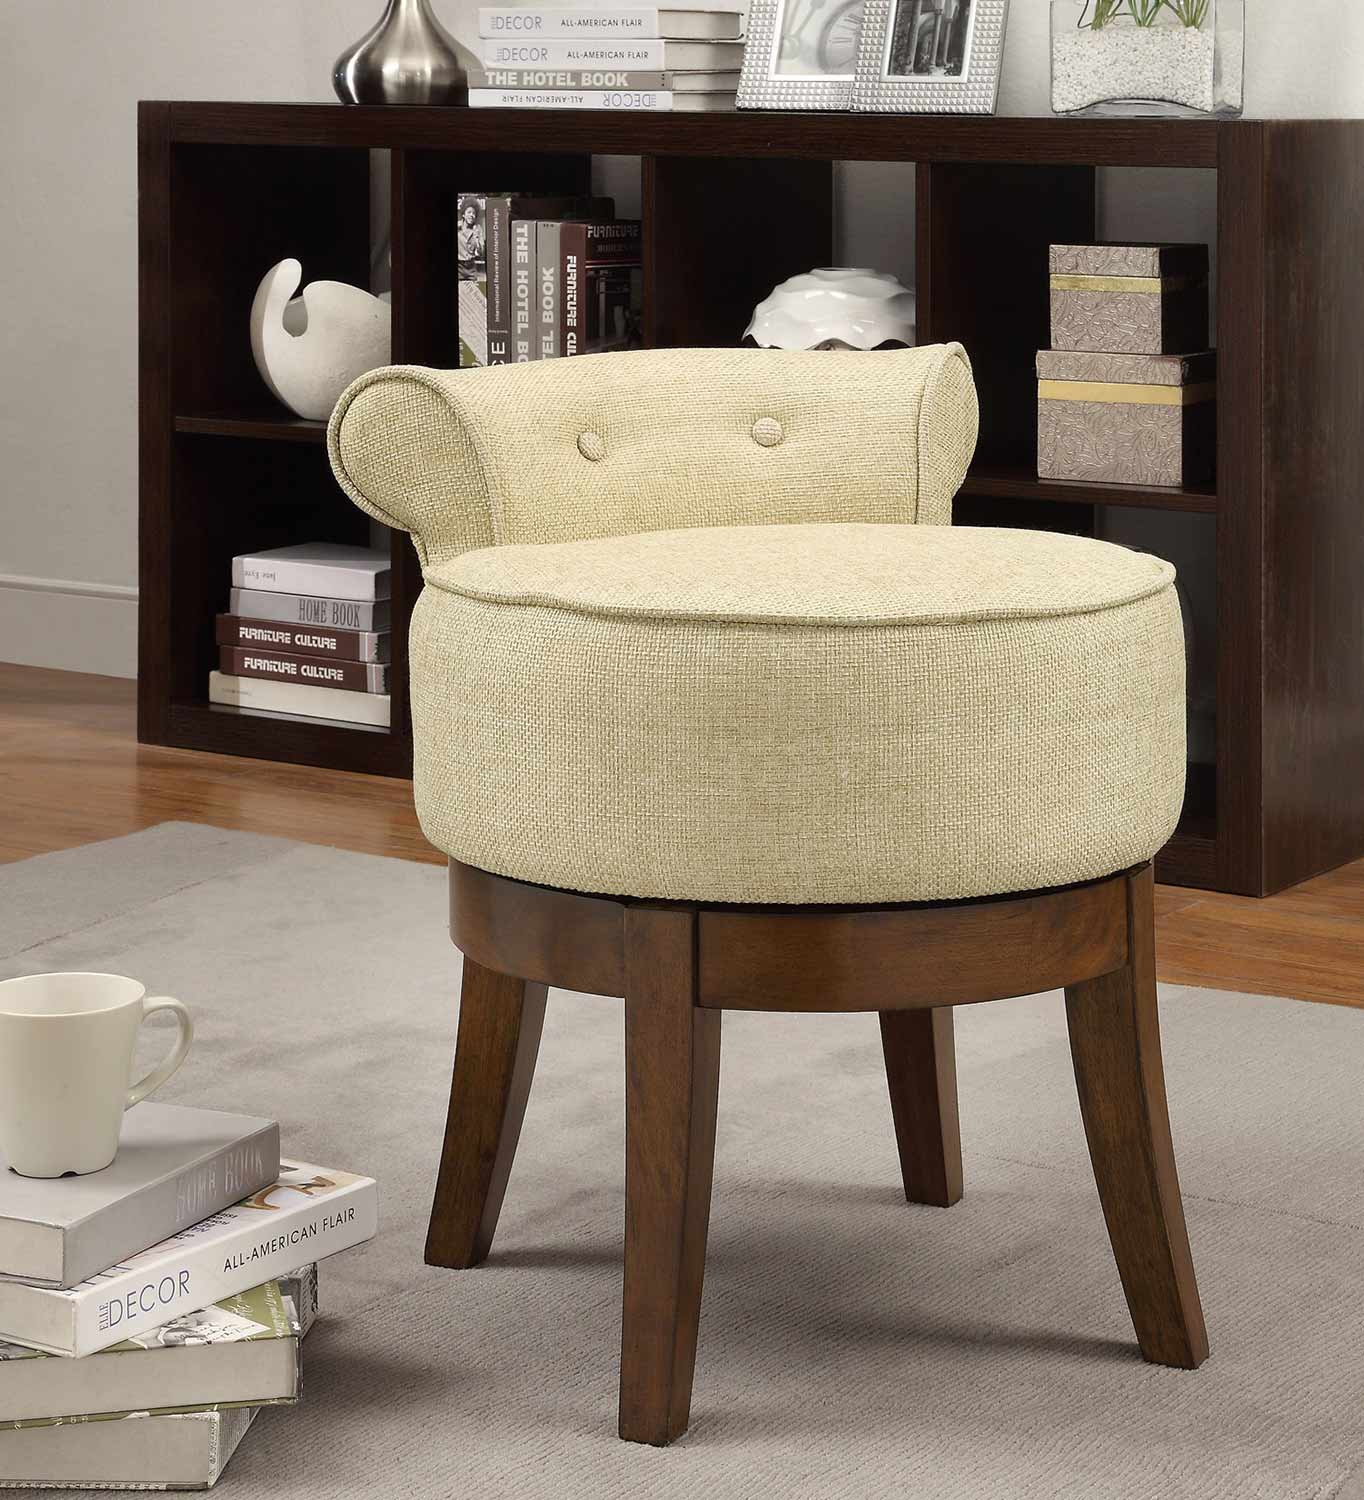 Coaster 900121 Accent Chair - Chrysanthemum Pattern